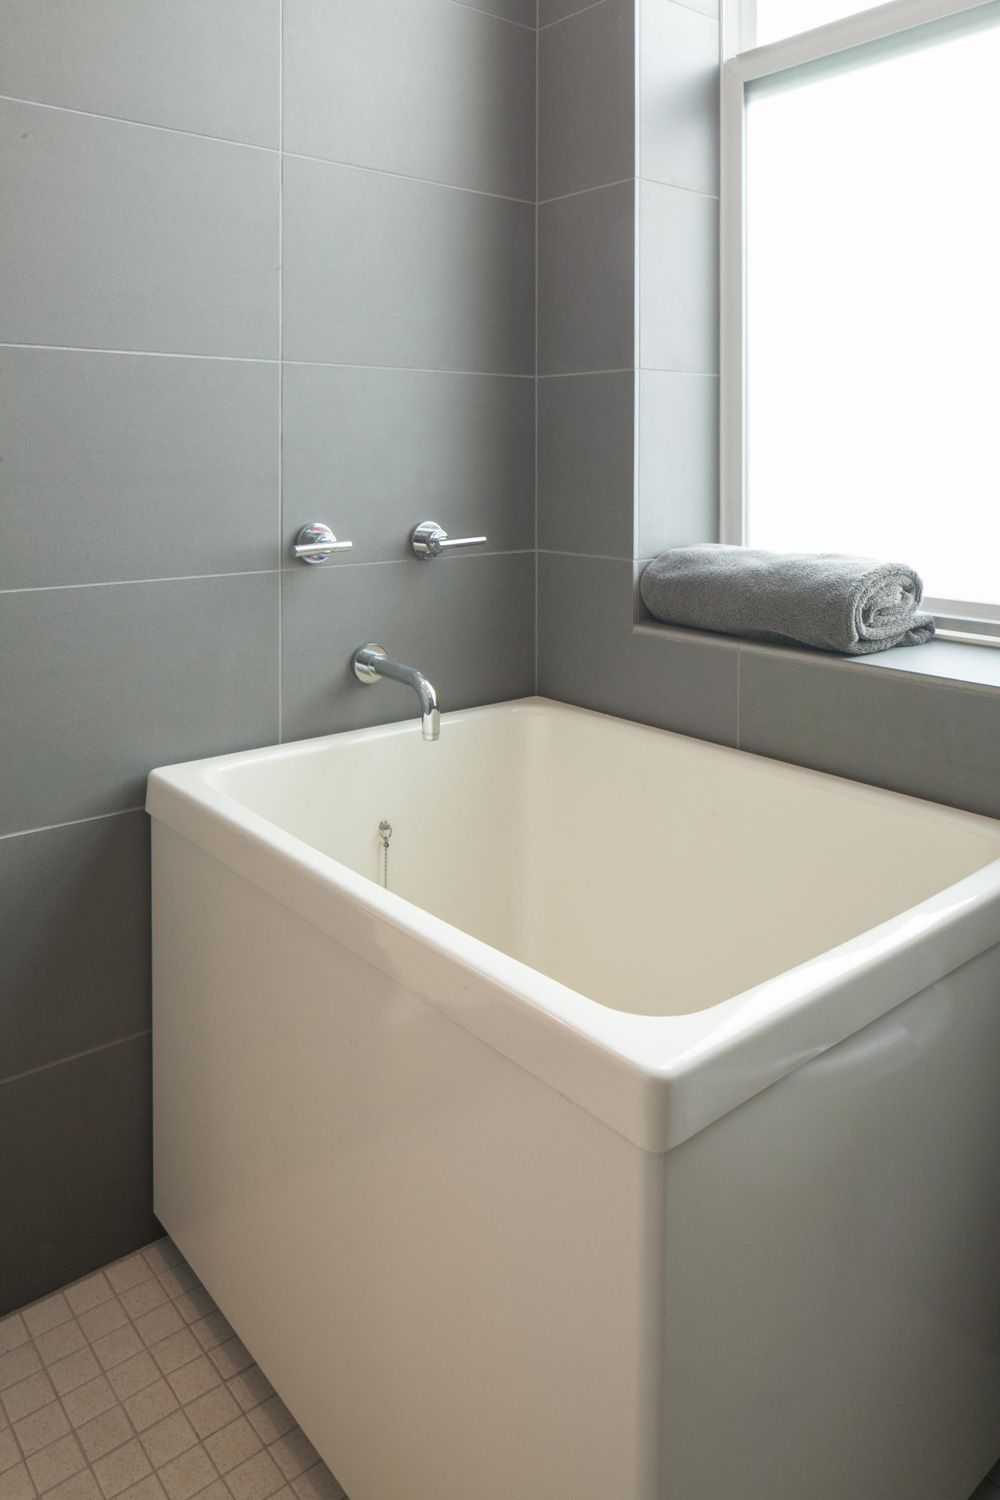 Anese Soaking Tub Ofuro Square With A Built In Seat Takes Up Minimal Amount Of E This One Is Freestanding